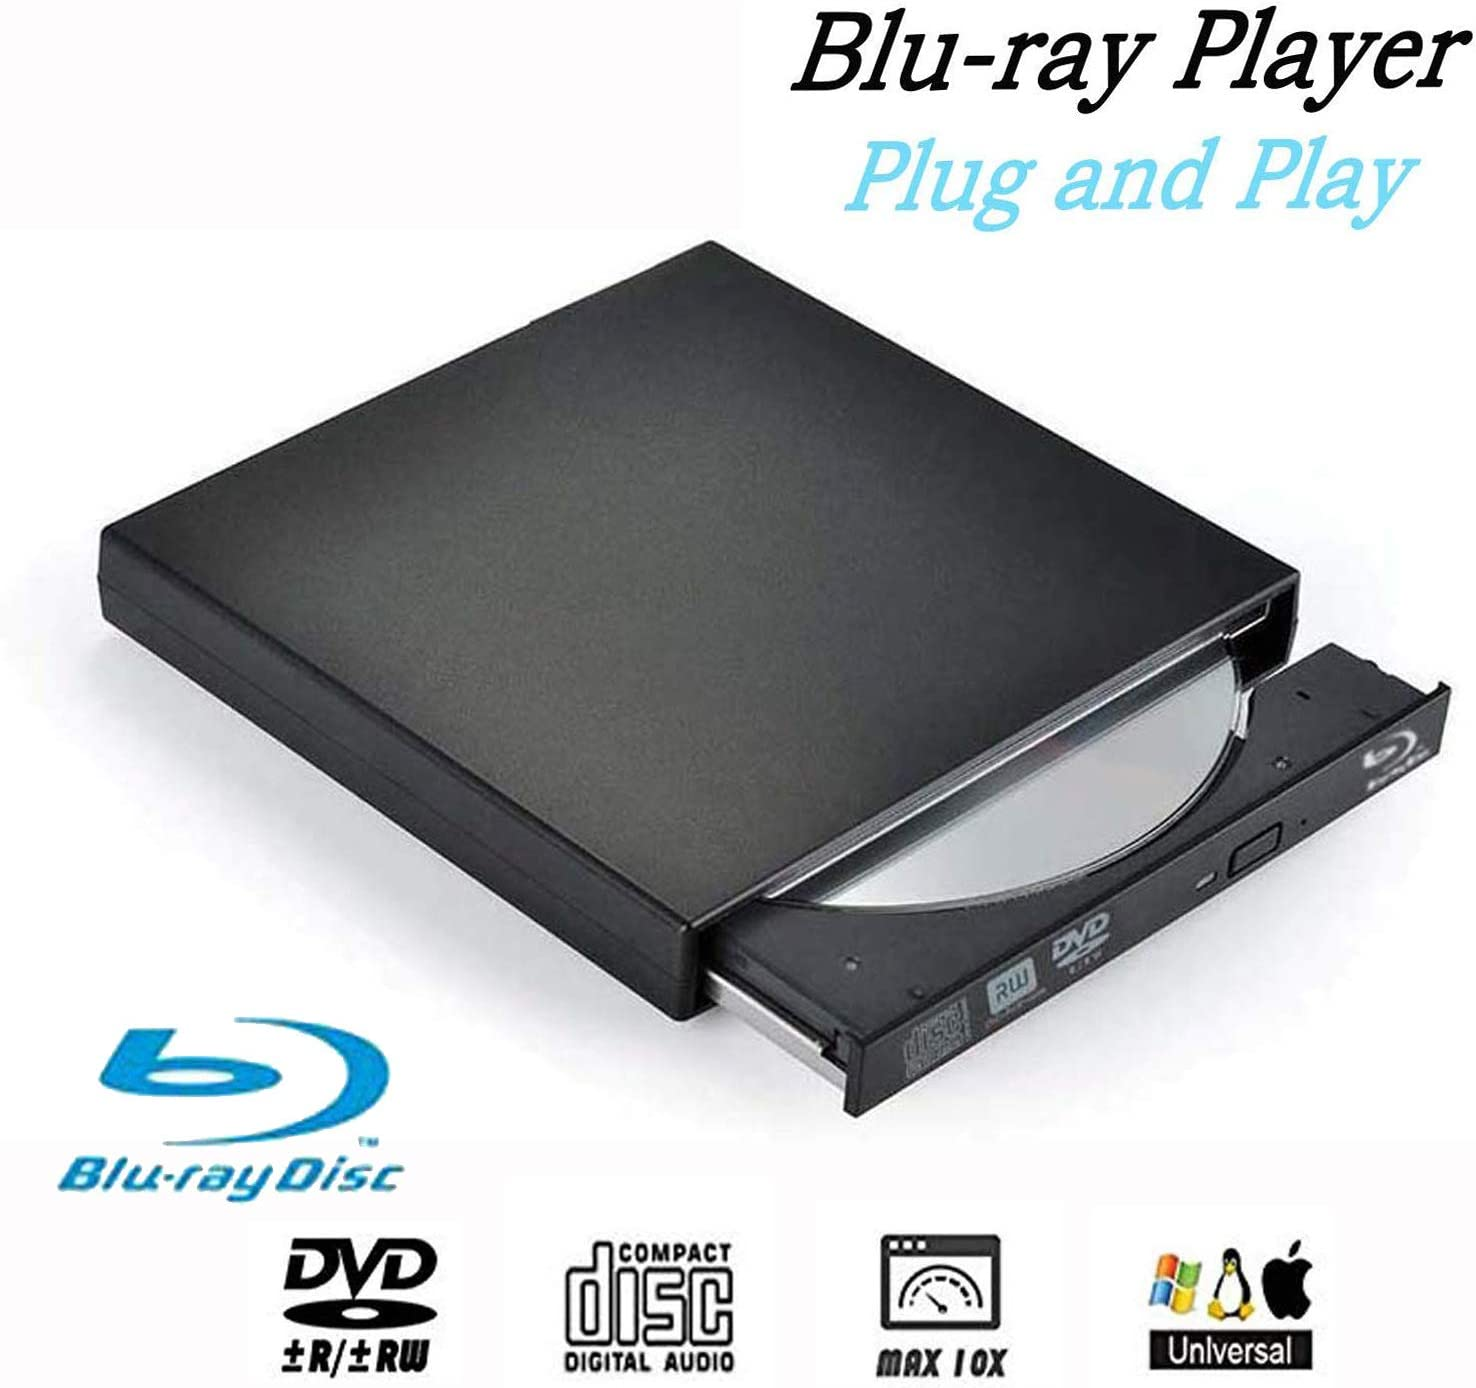 Blu-Ray Drive DVD Drive USB External Portable DVD Burner BD-ROM DVD/CD-RW/ROM Writer for Windows 2000/XP/Vista/Win 7/Win 8/Win 10 Notebook PC Desktop Computer,Plug and Play